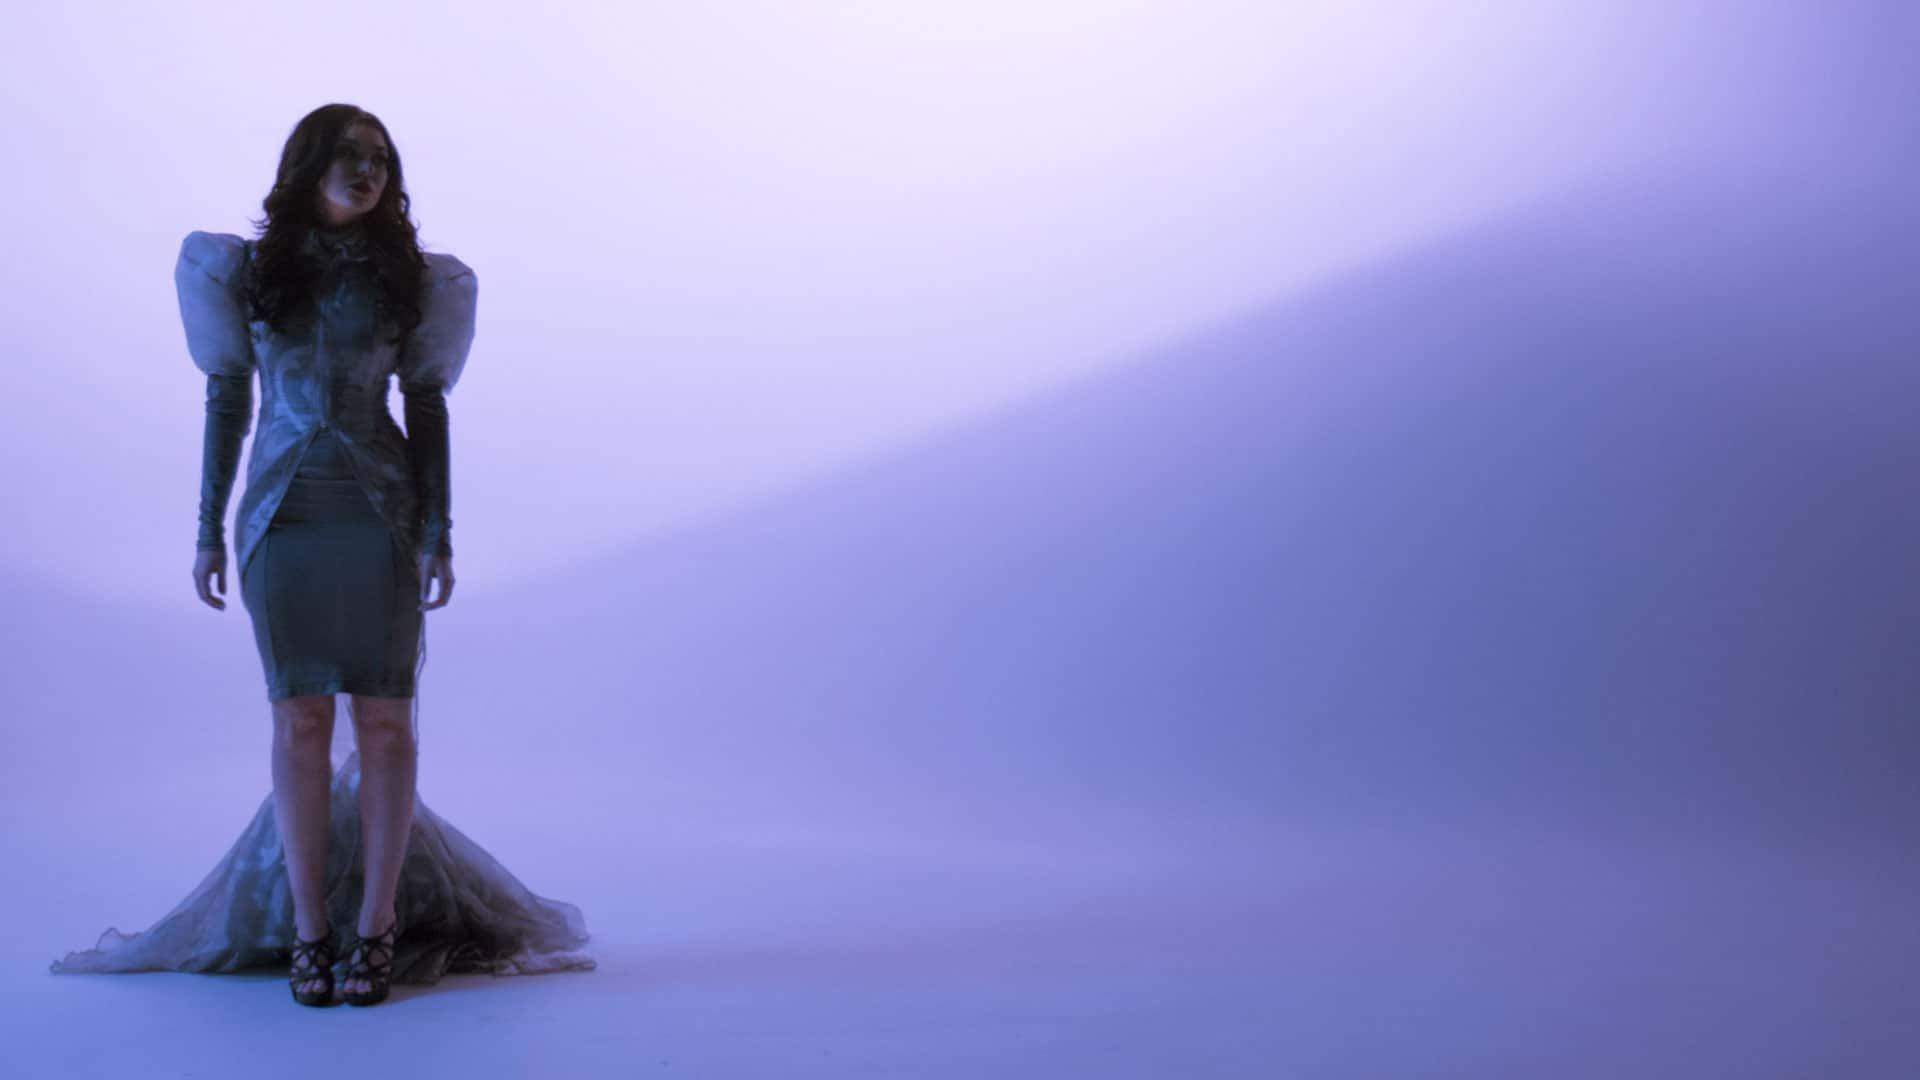 still from music video on cyclorama